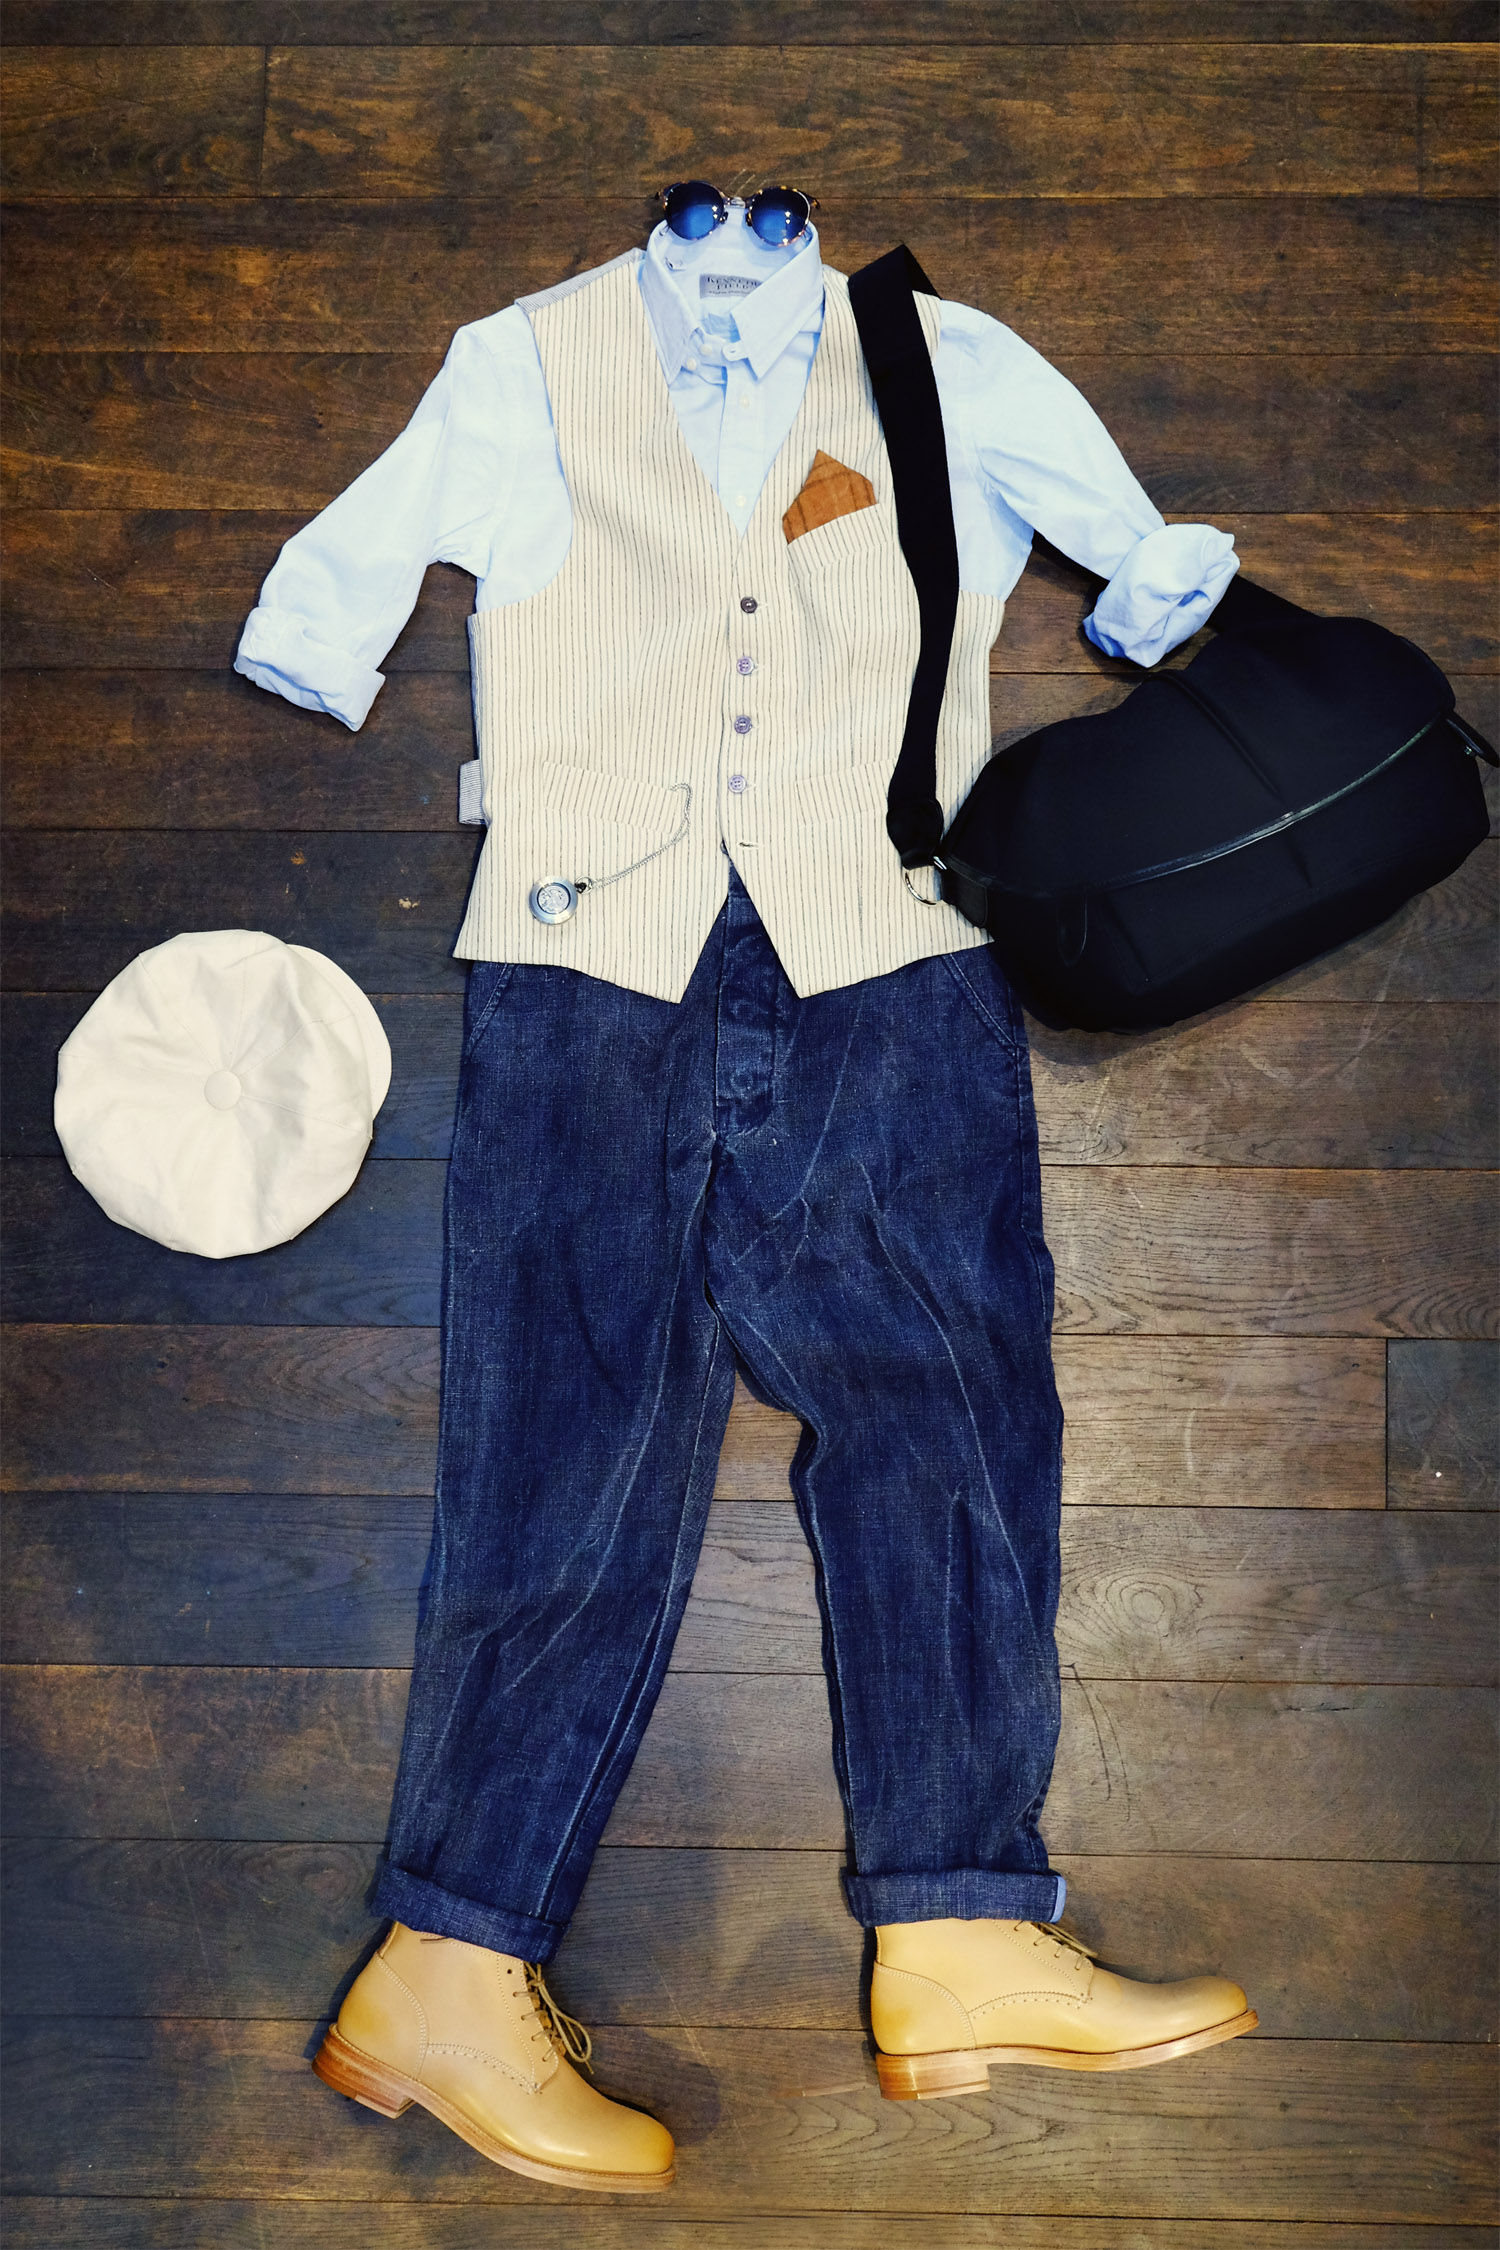 outfit-gallamini-kennethfield-man1924-buttsandshoulders-eyevan-hillside